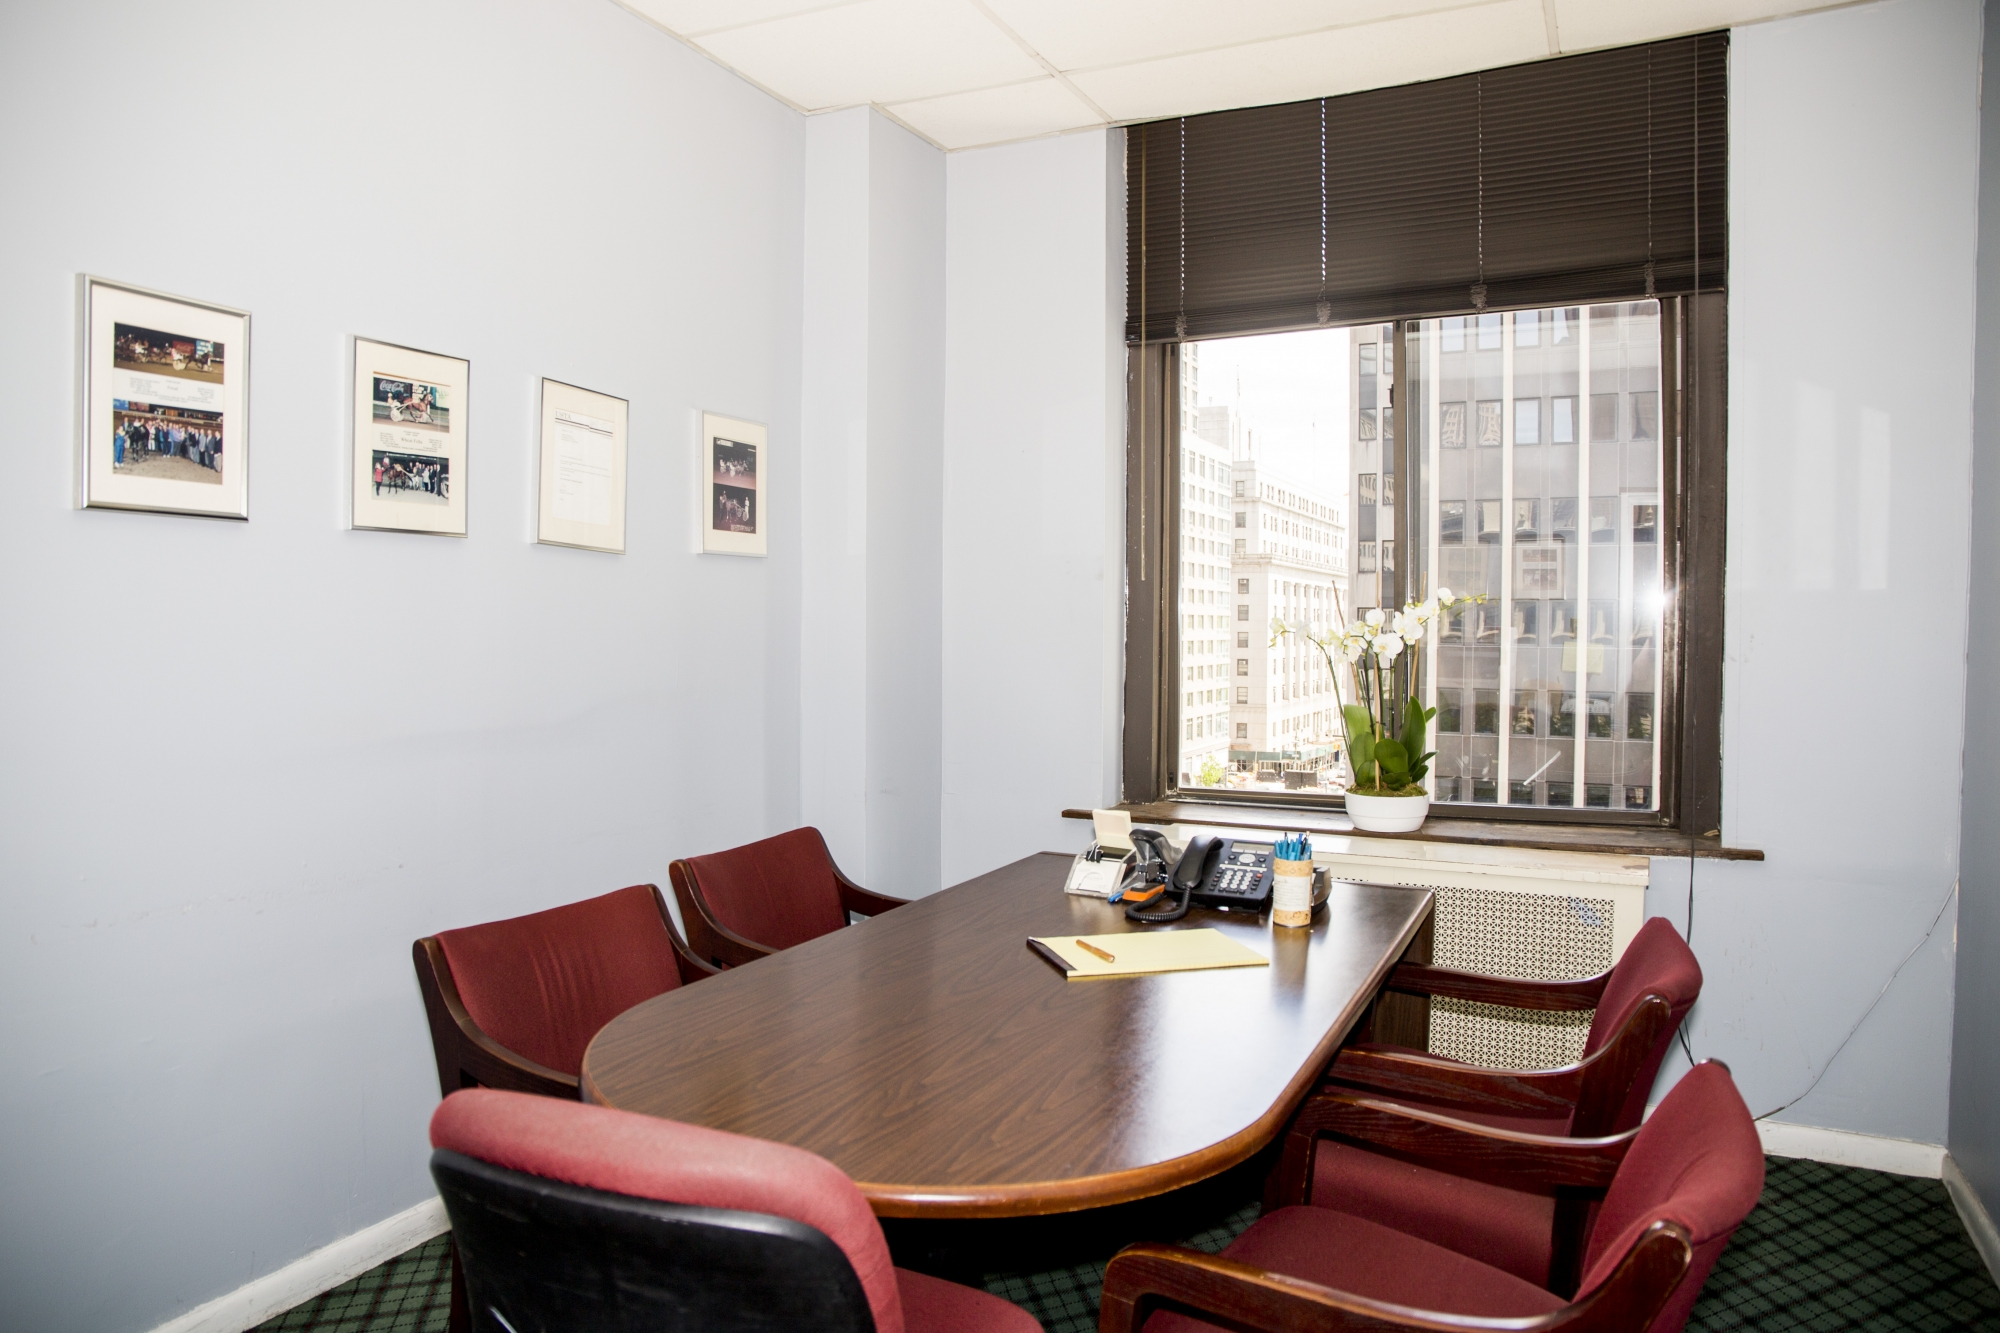 Conference Room at Reid B. Wissner Law Offices in New York City